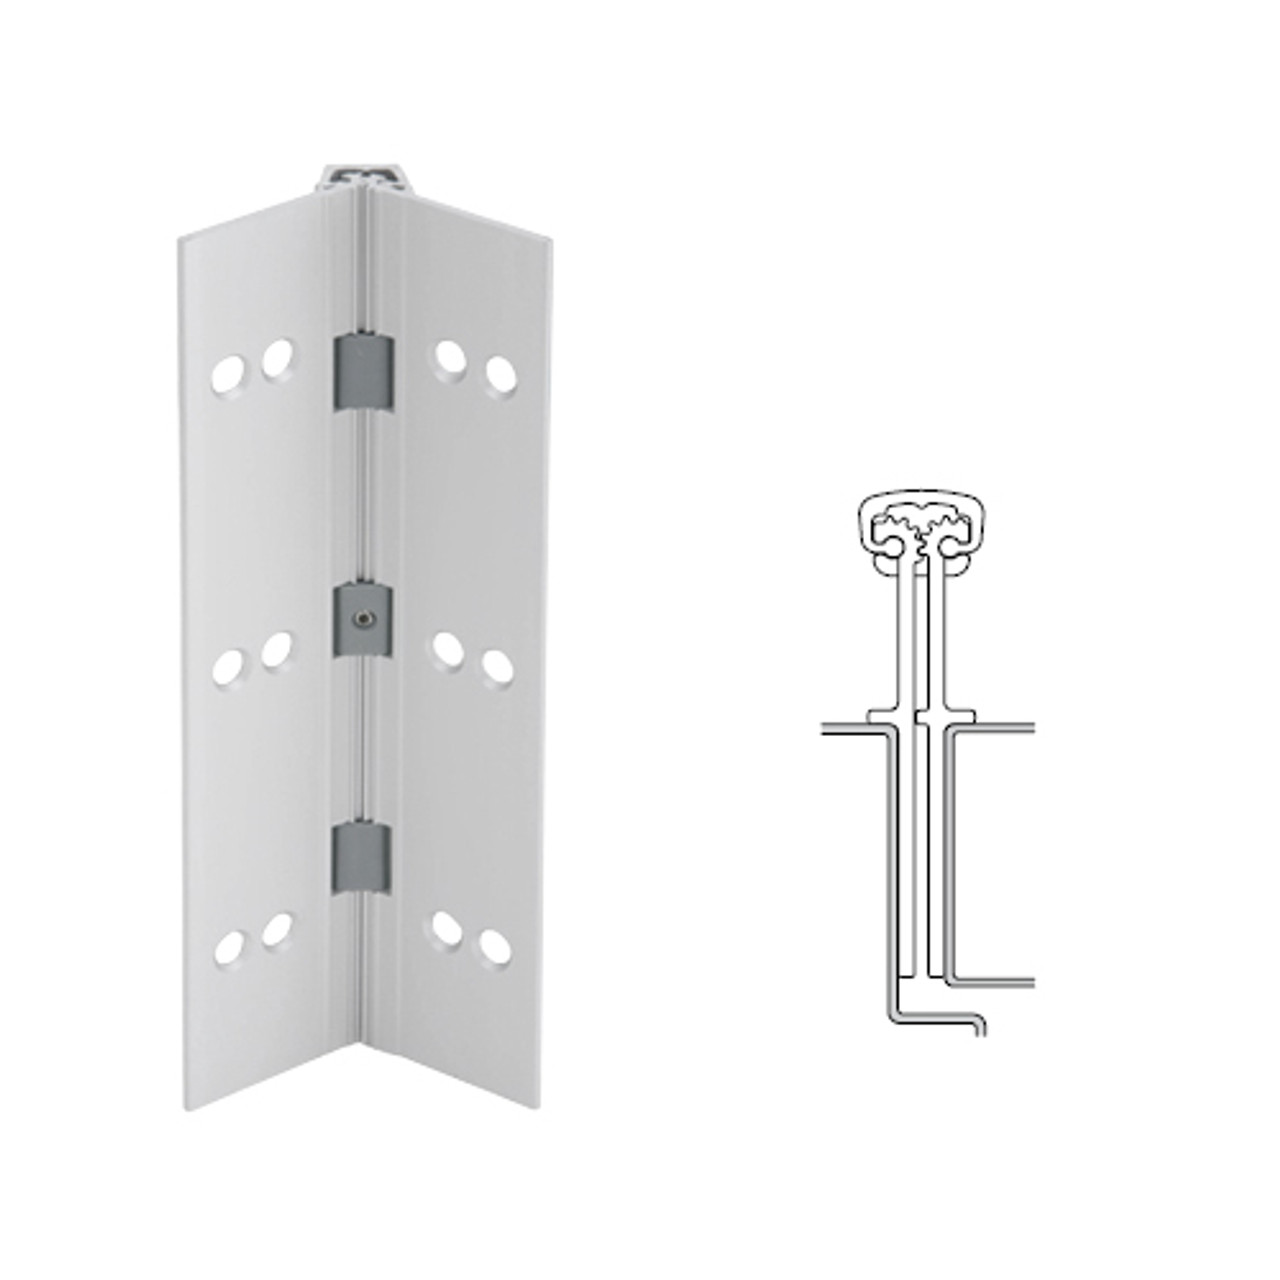 040XY-US28-83-TFWD IVES Full Mortise Continuous Geared Hinges with Thread Forming Screws in Satin Aluminum